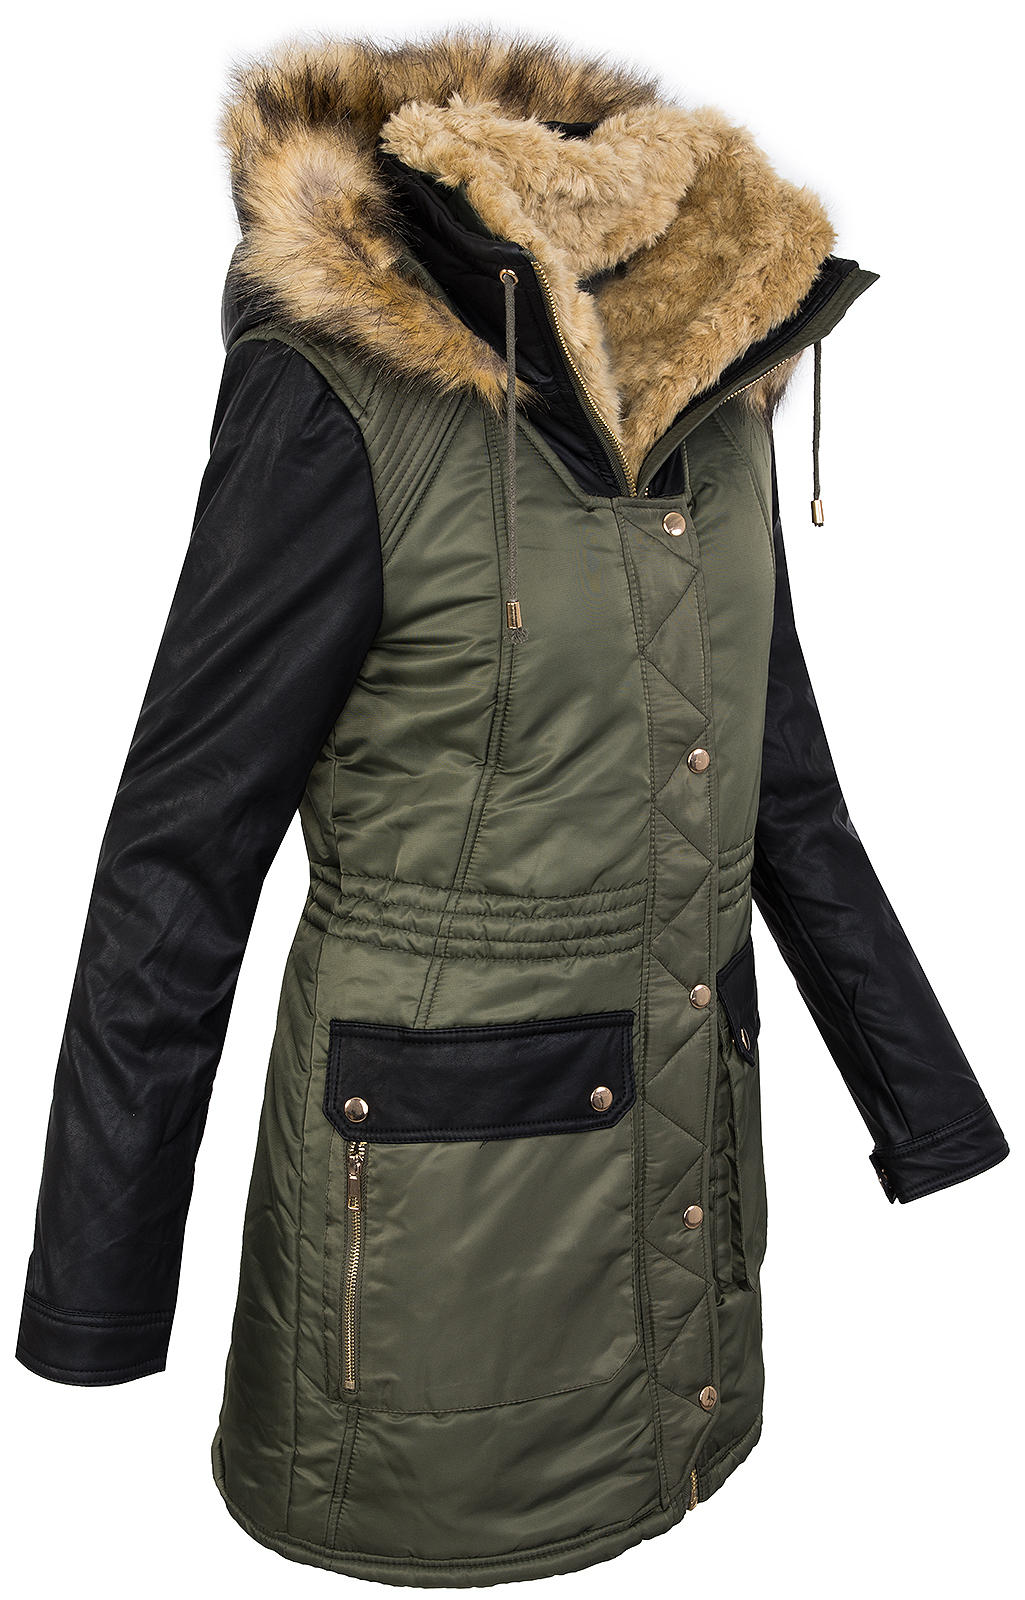 damen winter jacke teddyfell futter parka kunstleder rmel winterjacke d 257 neu ebay. Black Bedroom Furniture Sets. Home Design Ideas